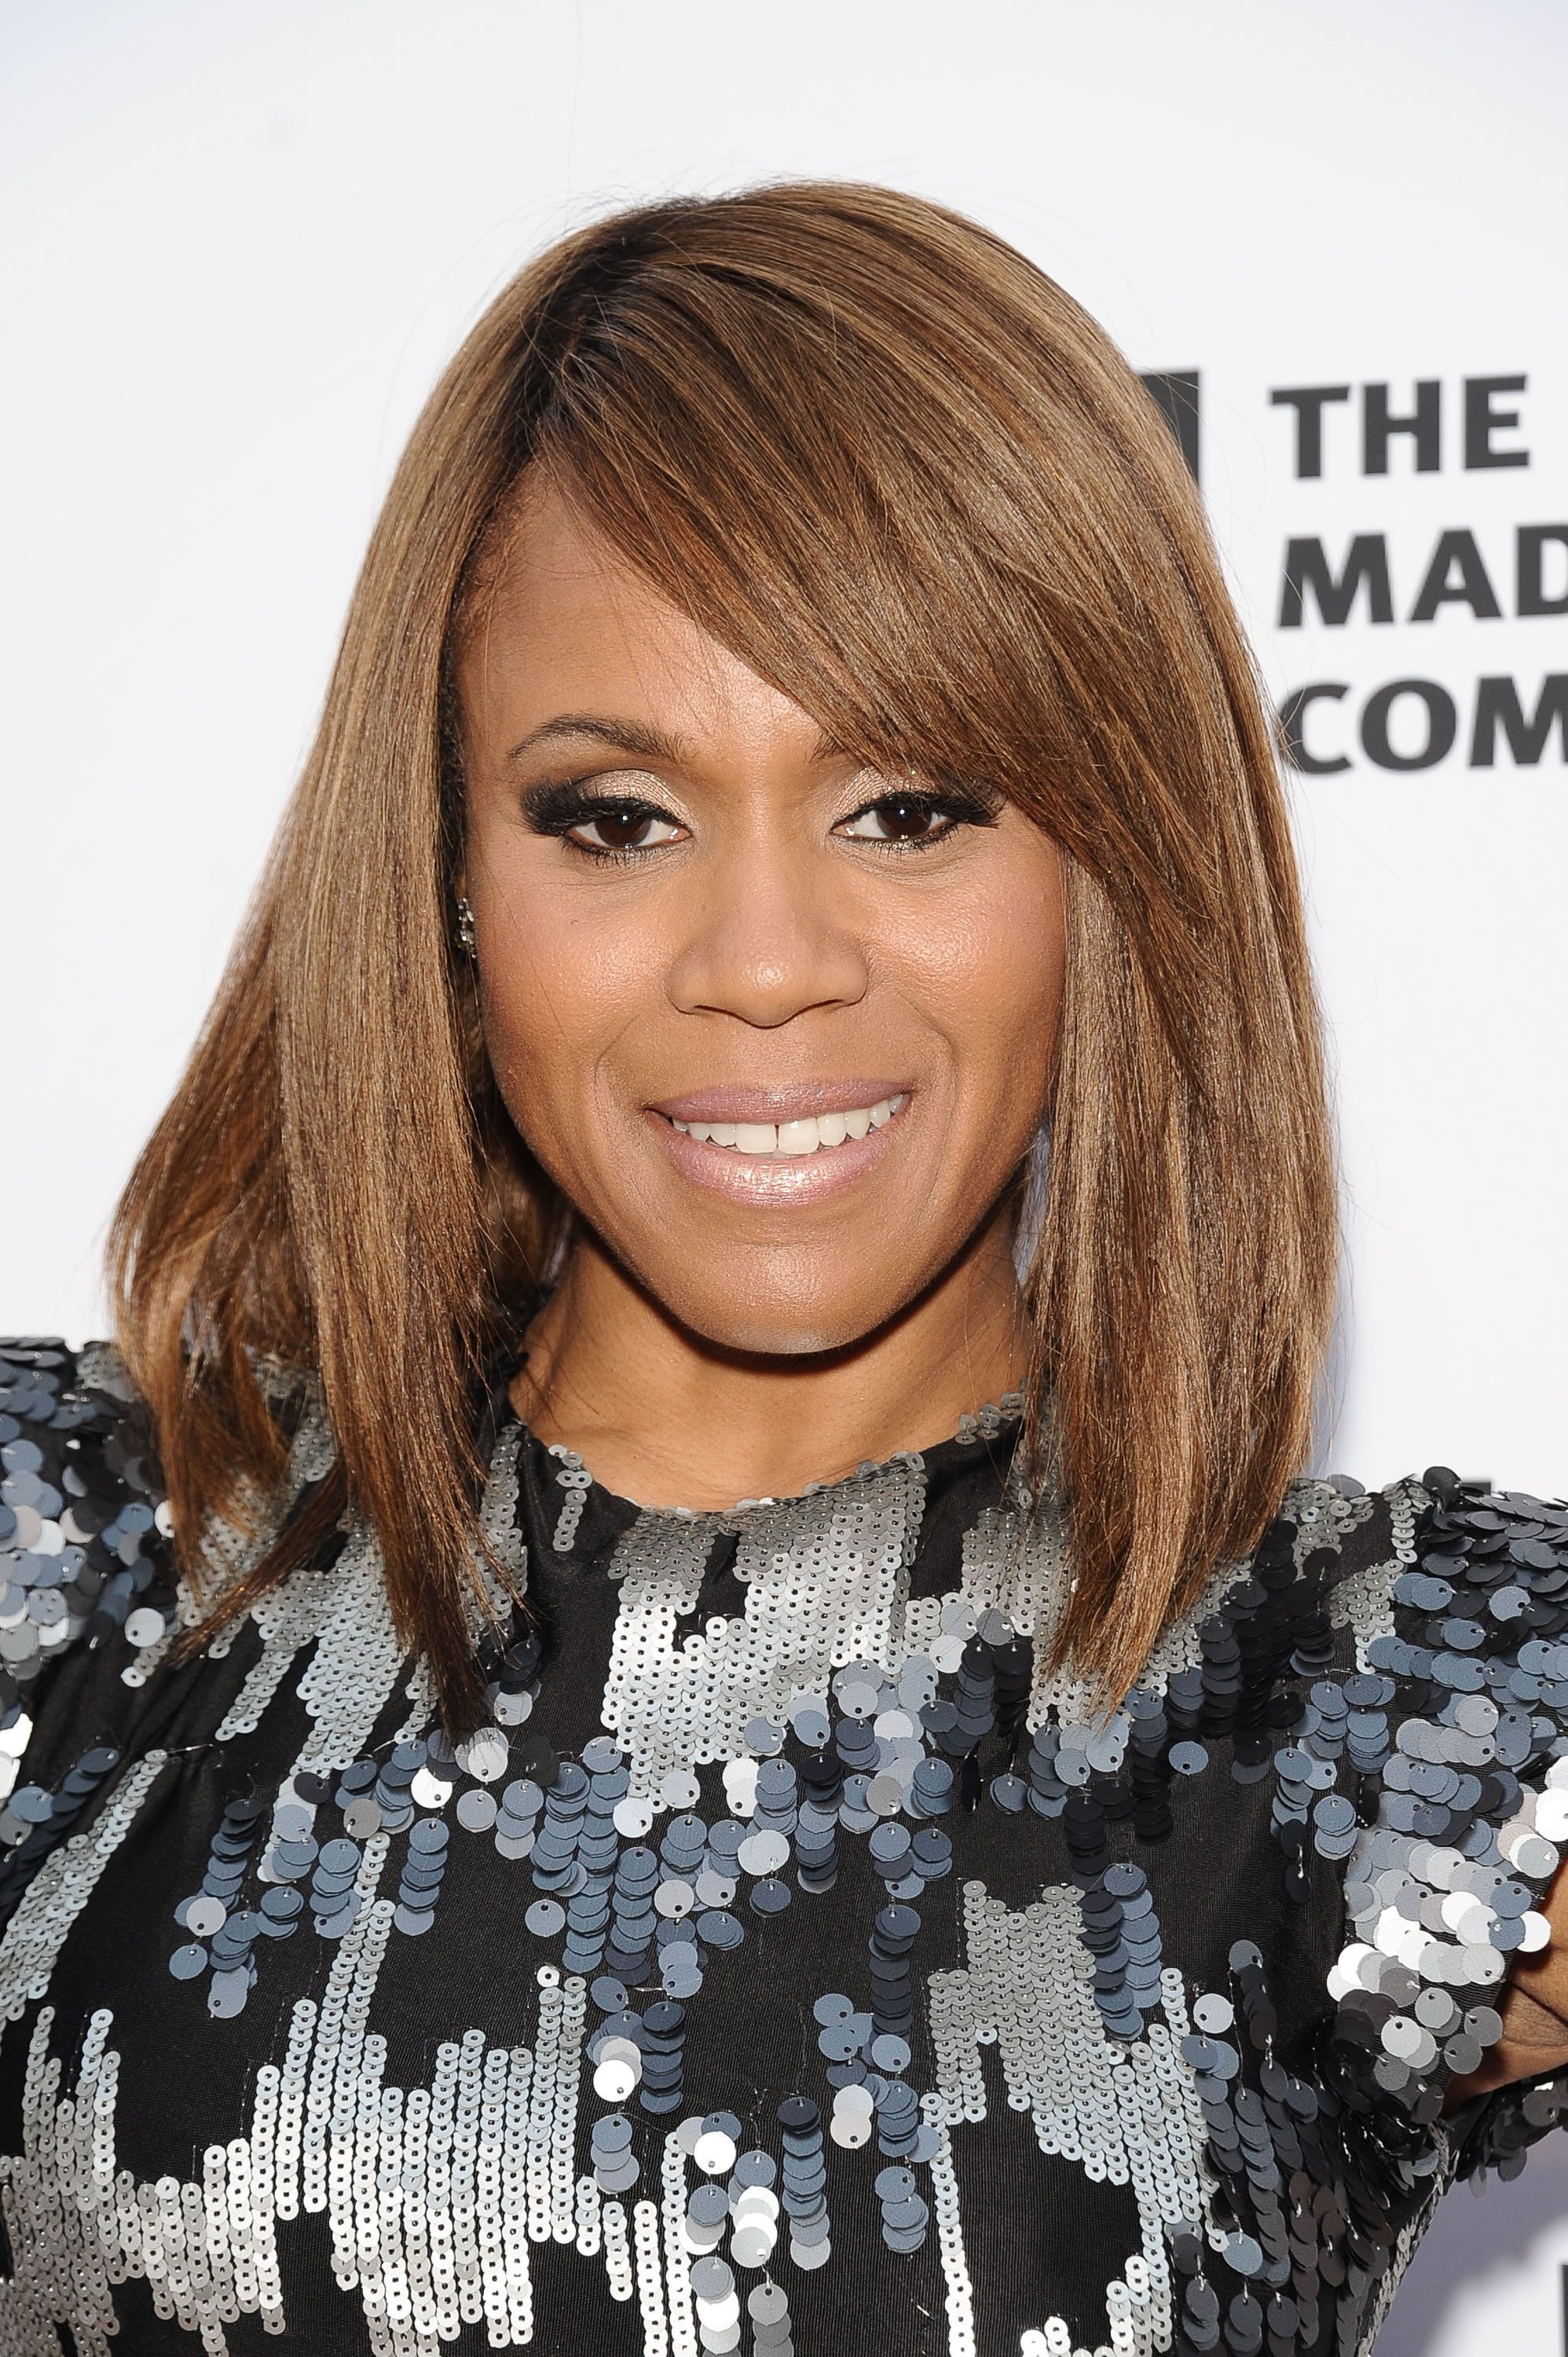 NEW YORK, NY - JUNE 08:  Deborah Cox attends The Apollo Theater's 10th Annual Spring Gala at The Apollo Theater on June 8, 2015 in New York City.  (Photo by D Dipasupil/FilmMagic)